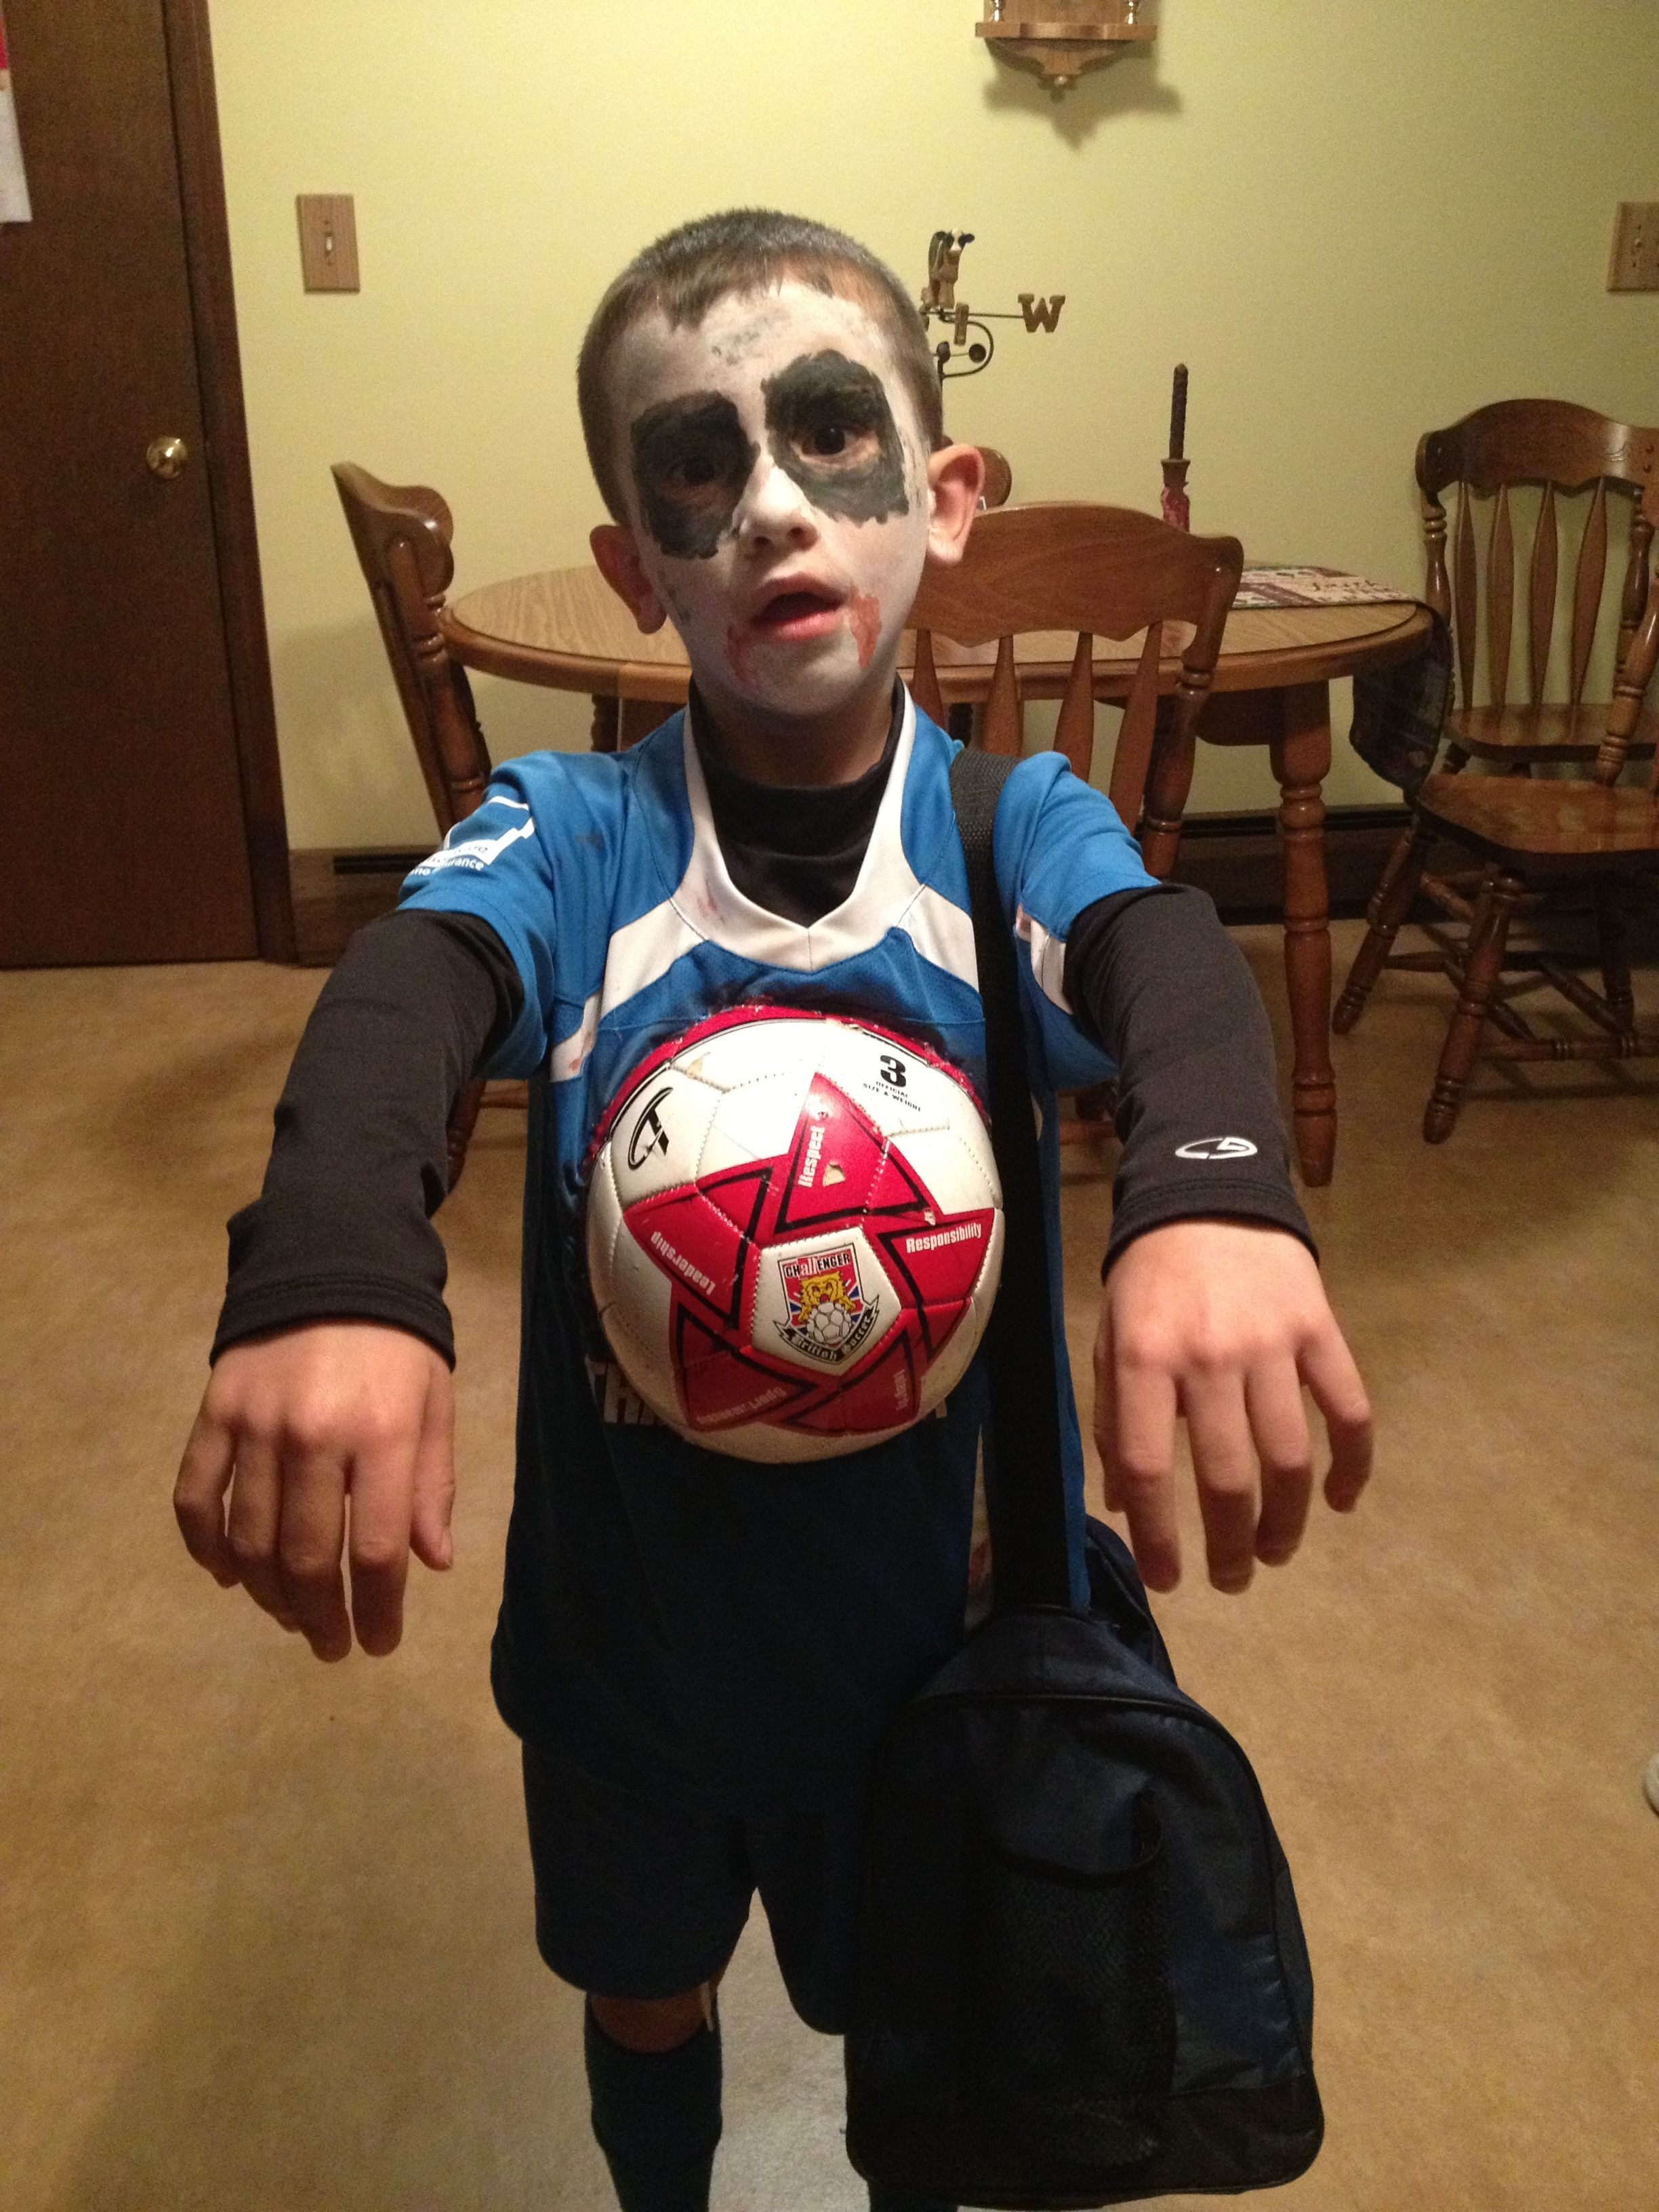 Zombie Soccer Player Halloween Costume Ideas